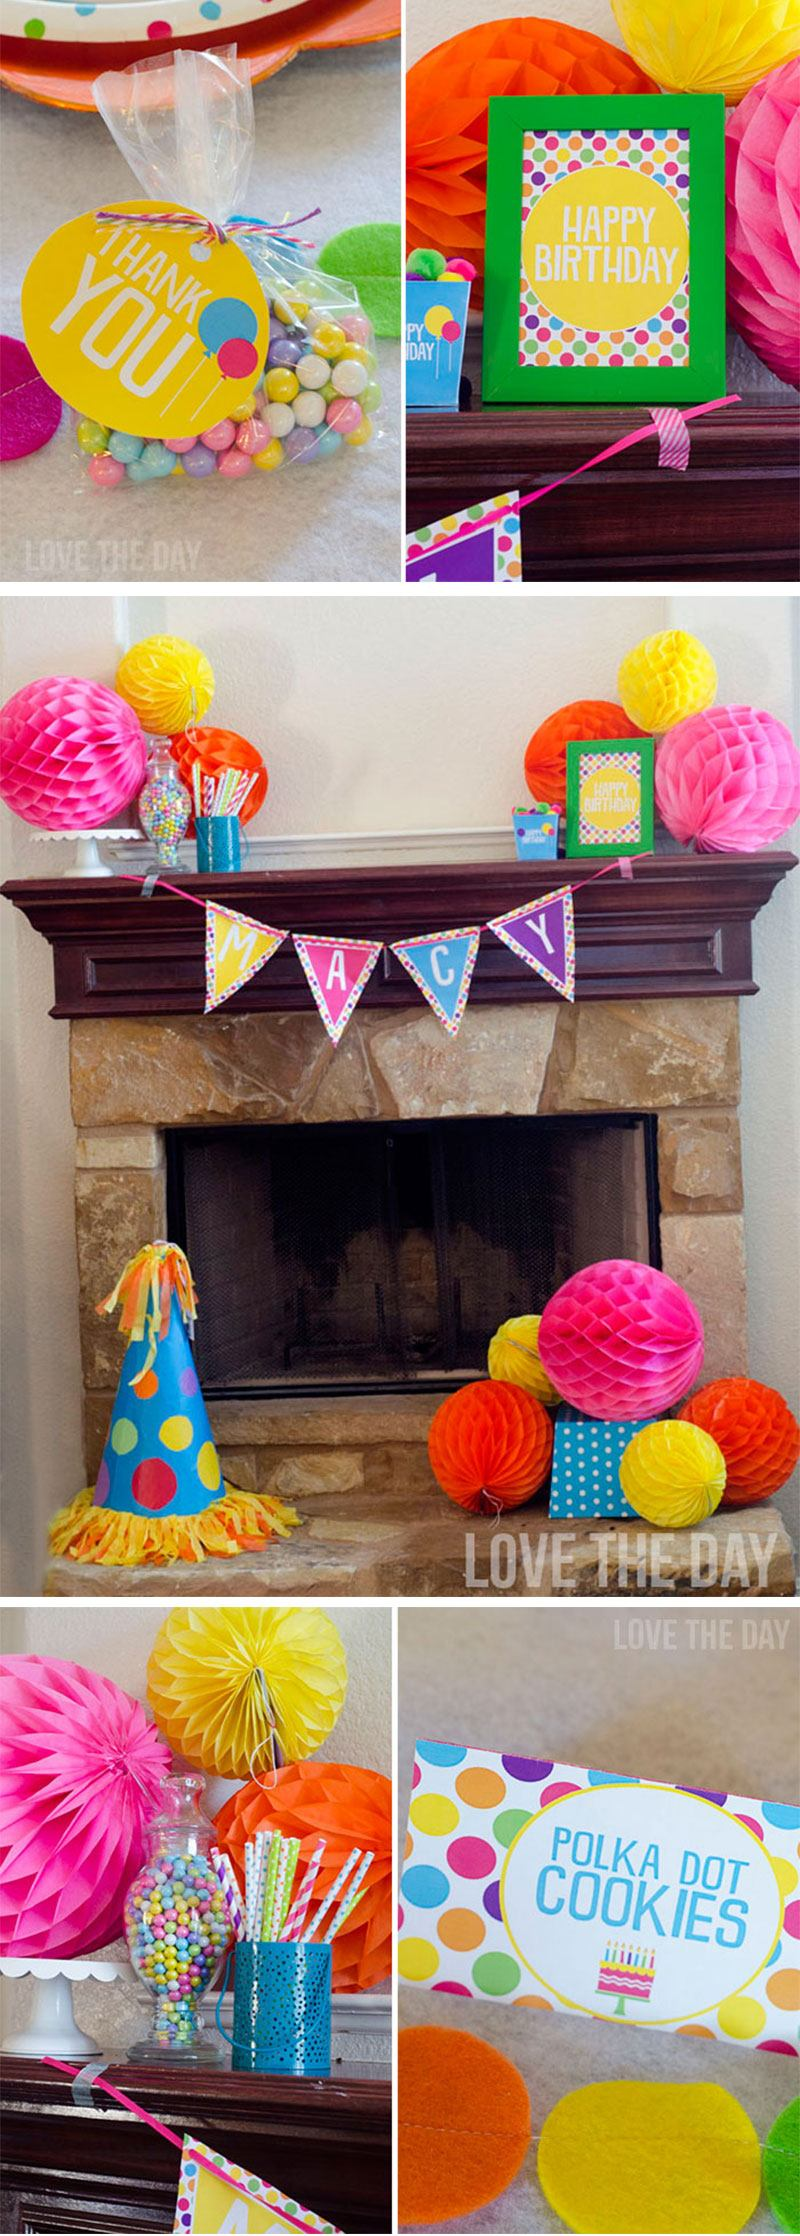 Polka Dot Party Ideas by Lindi Haws of Love The Day